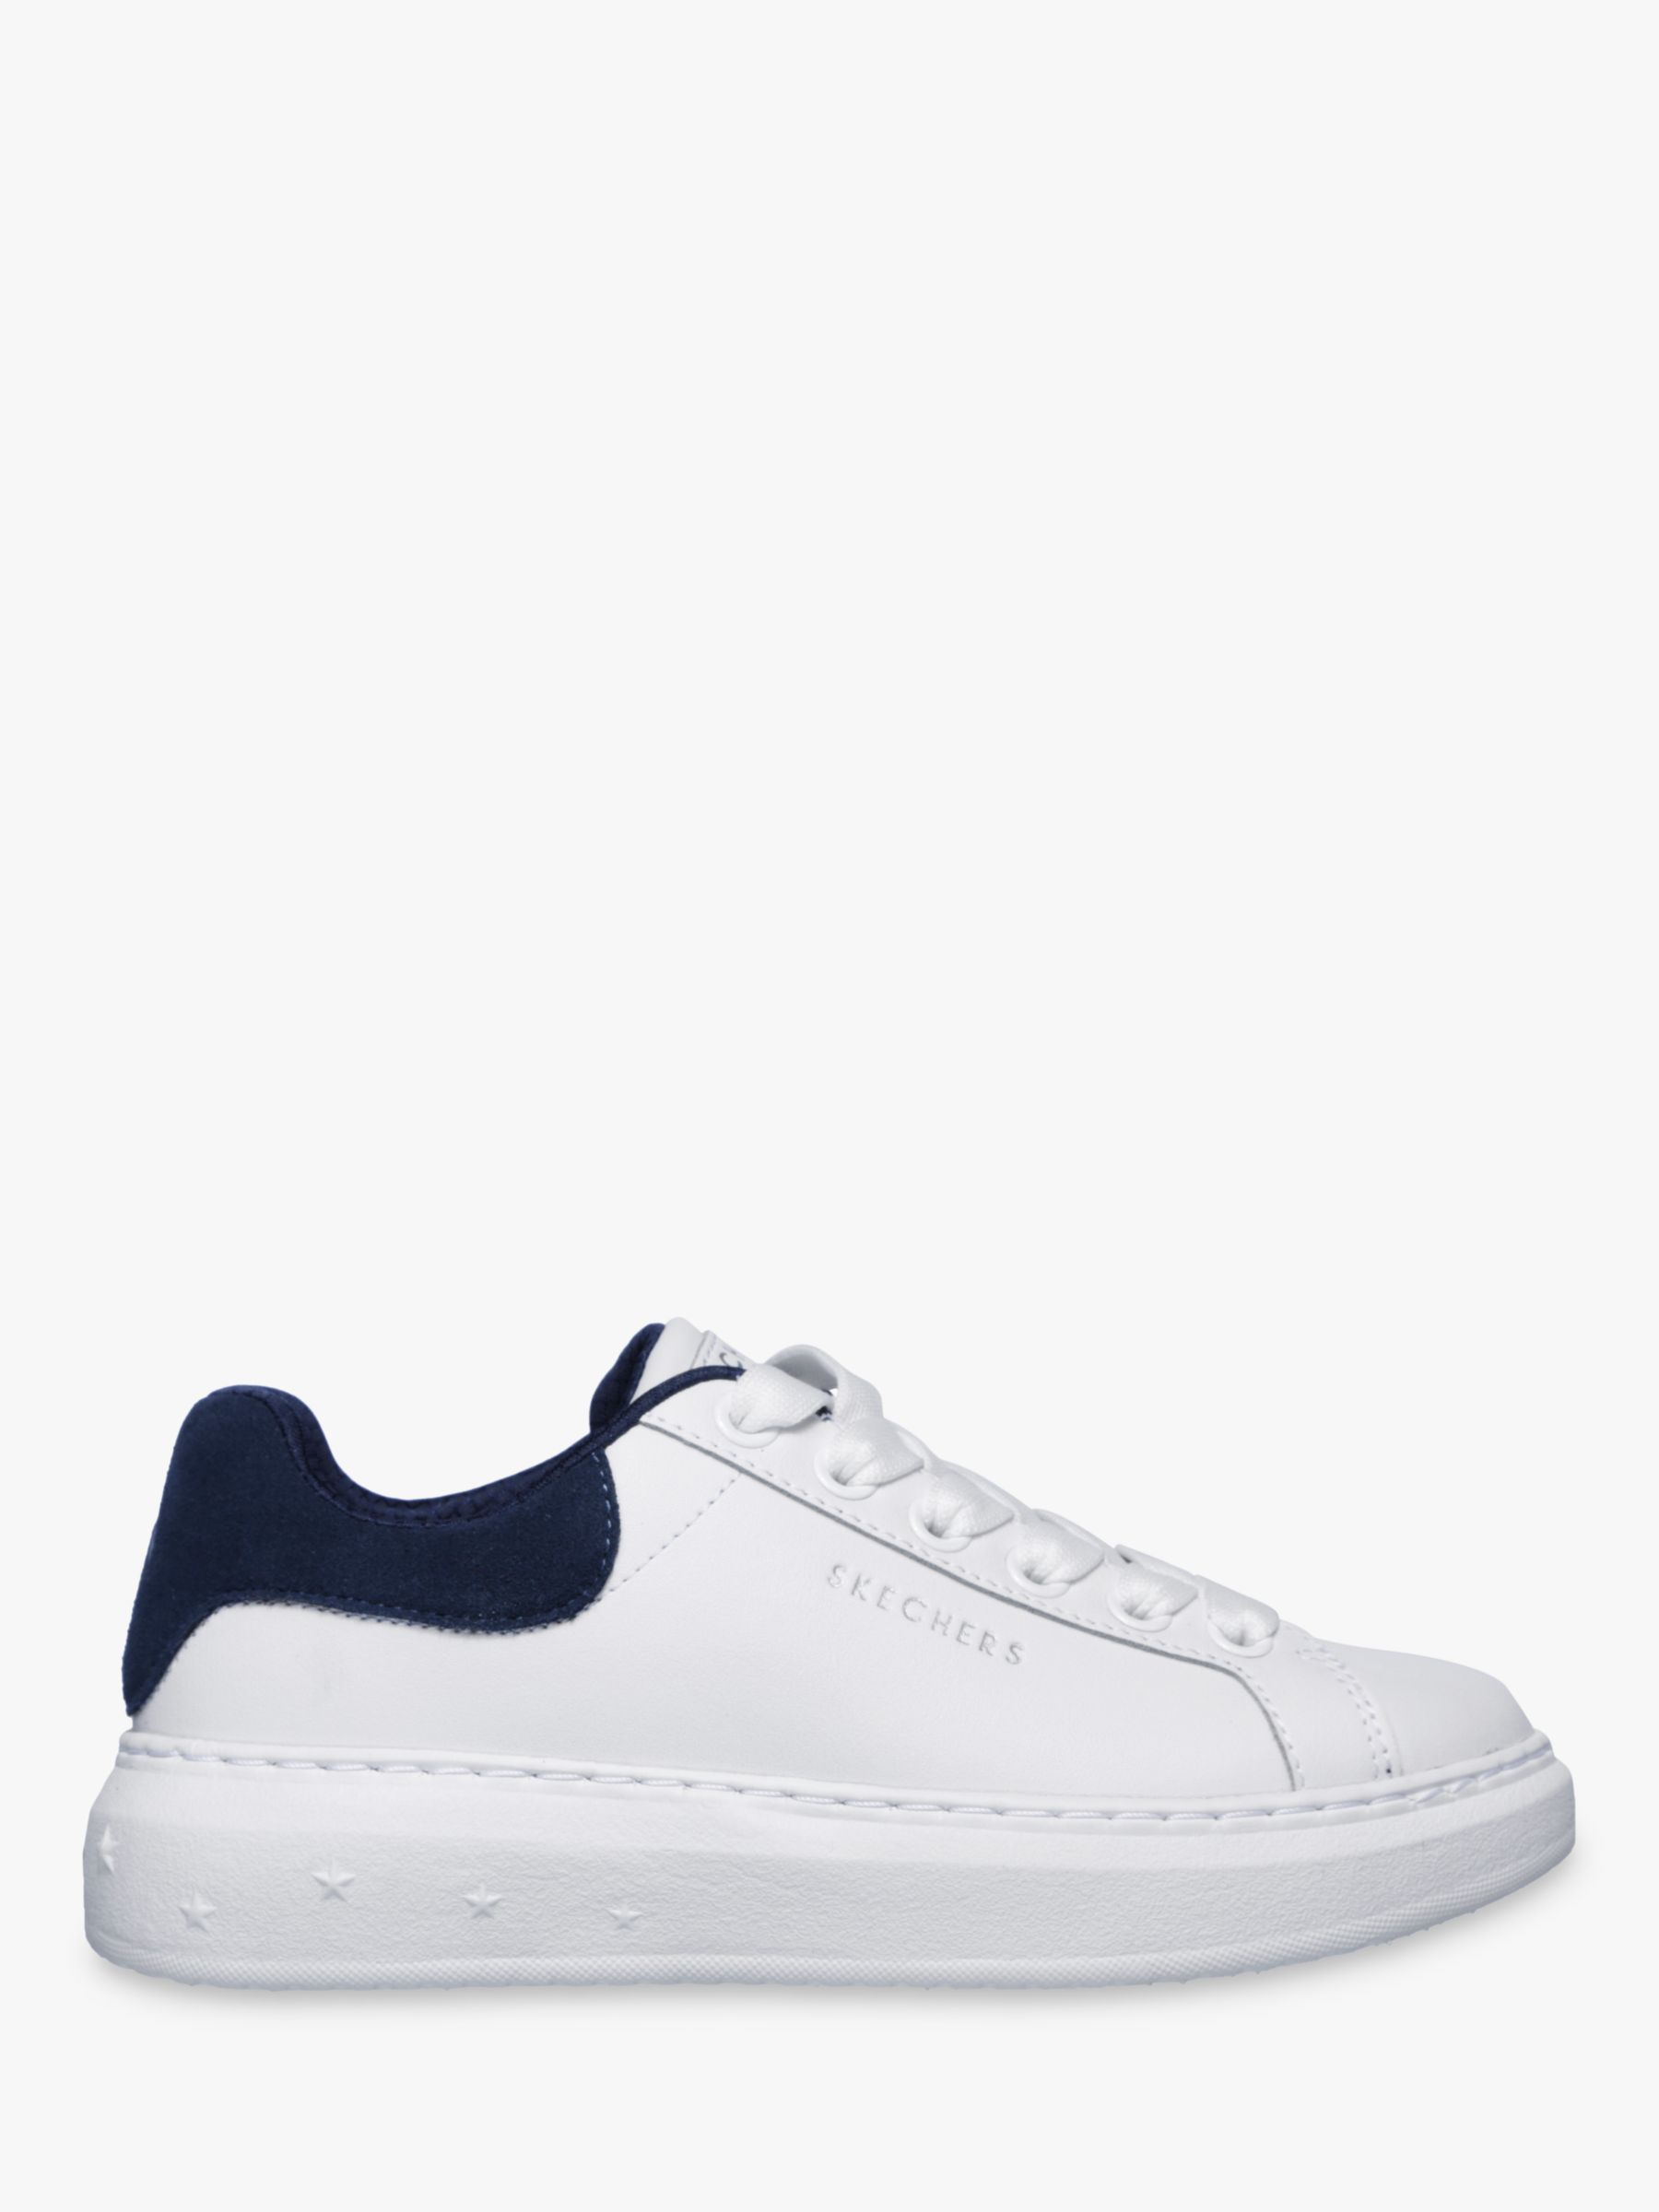 e88c5a0163c Skechers High Street Lace Up Trainers, White/Navy Leather